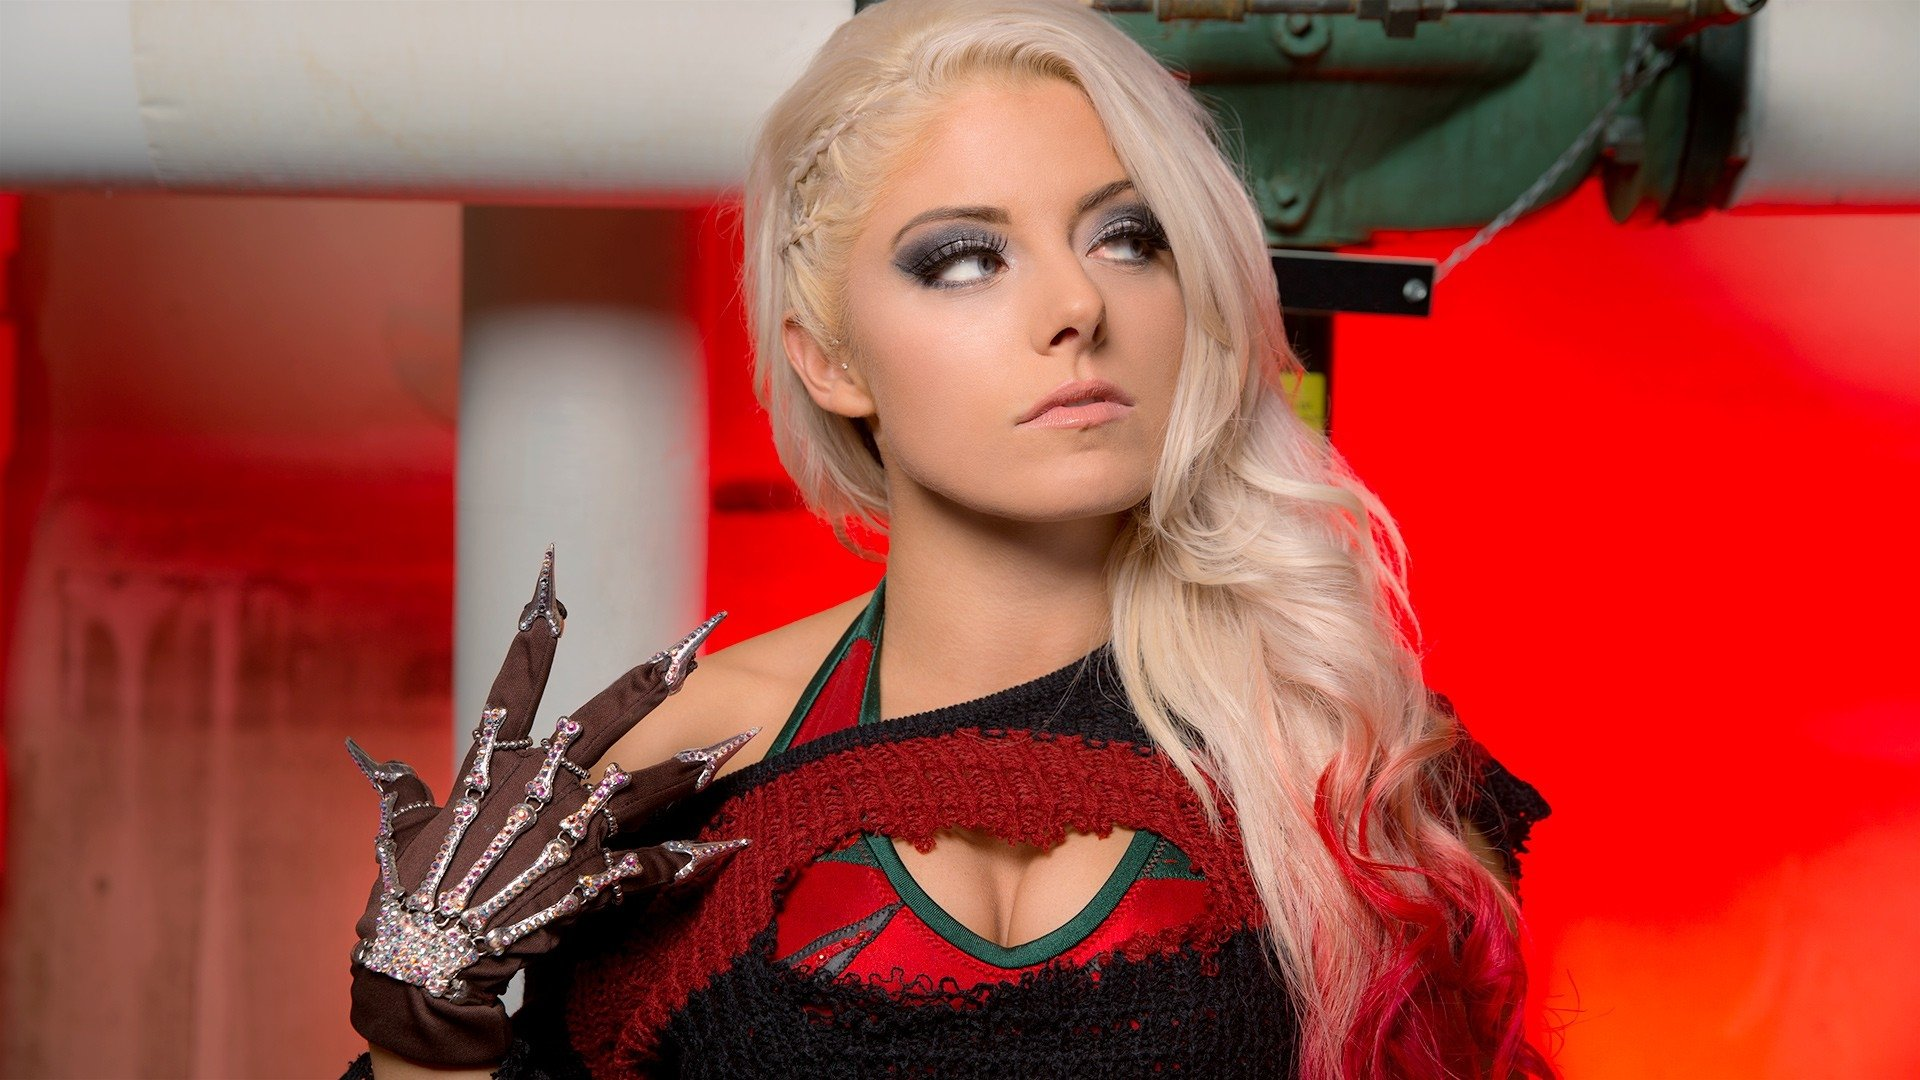 Alexa Bliss Boiler Room Beauty Fondo De Pantalla Hd Fondo